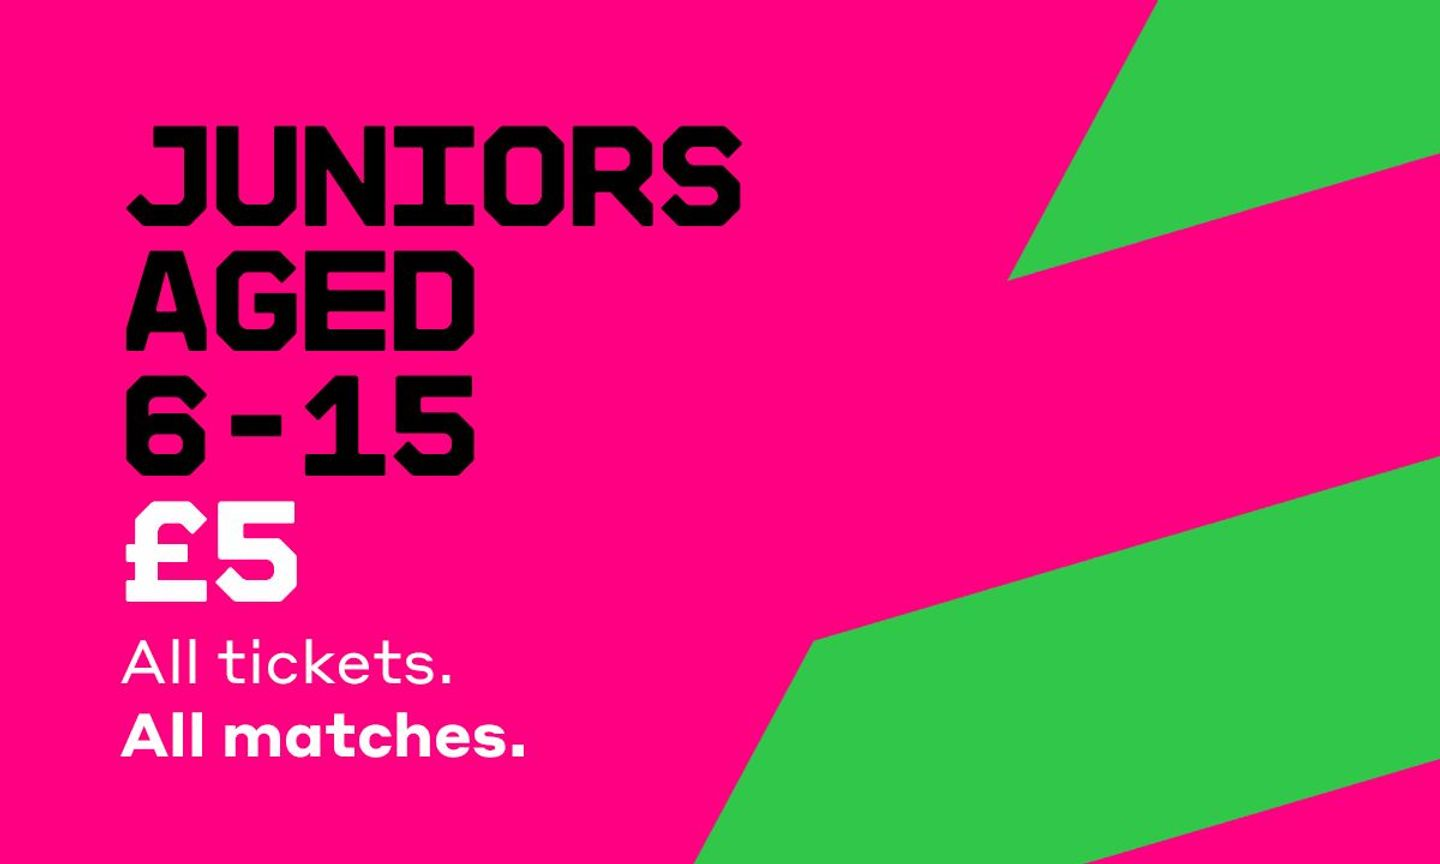 Under-16s will be able to attend The Hundred for just £5